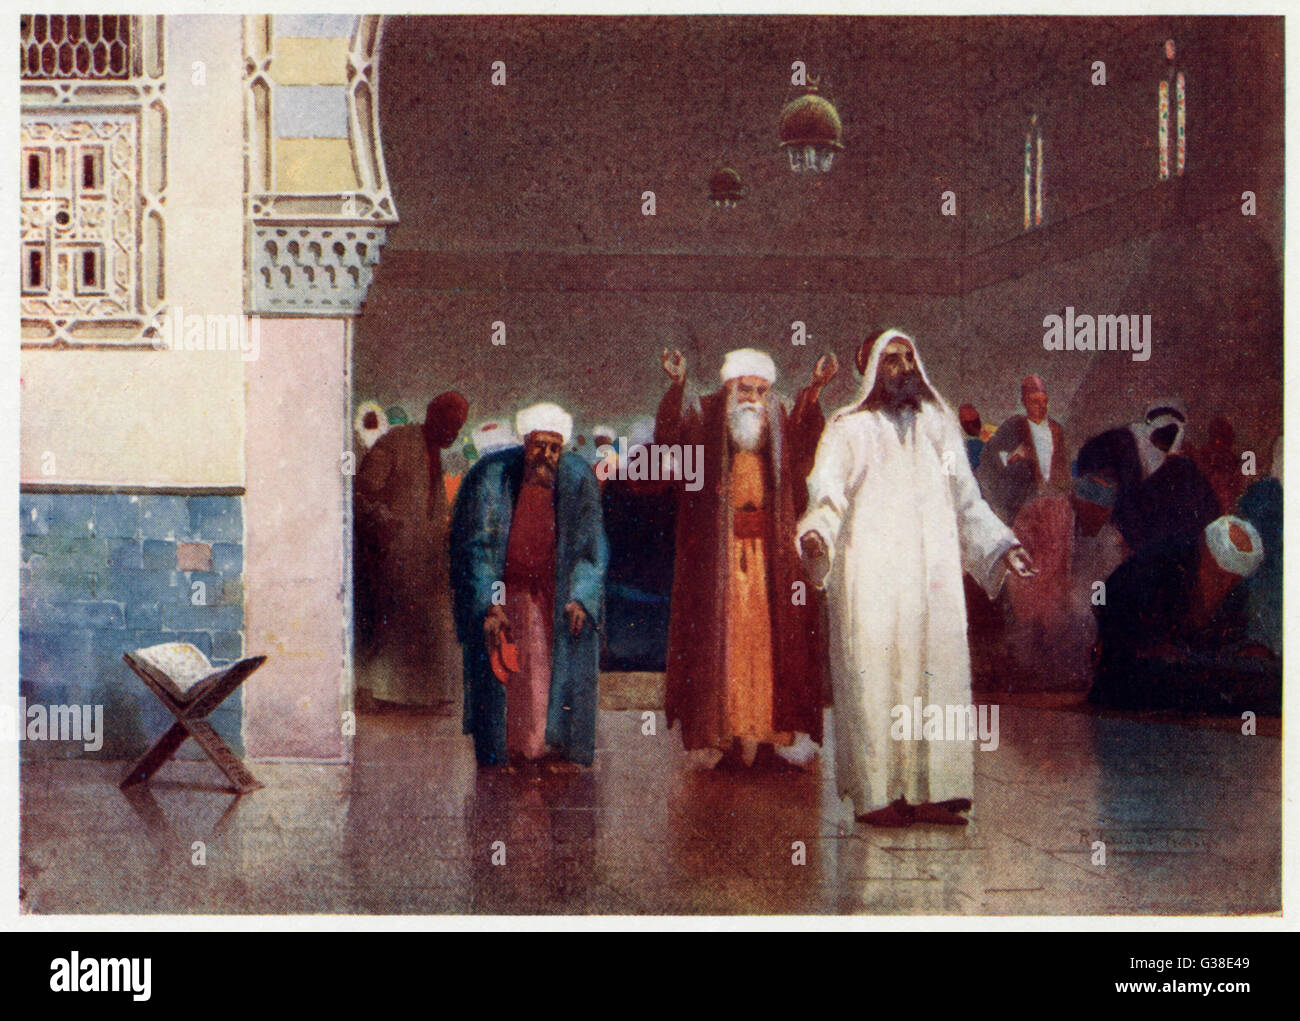 Egyptian Moslems at prayer  in a mosque        Date: 1904 - Stock Image